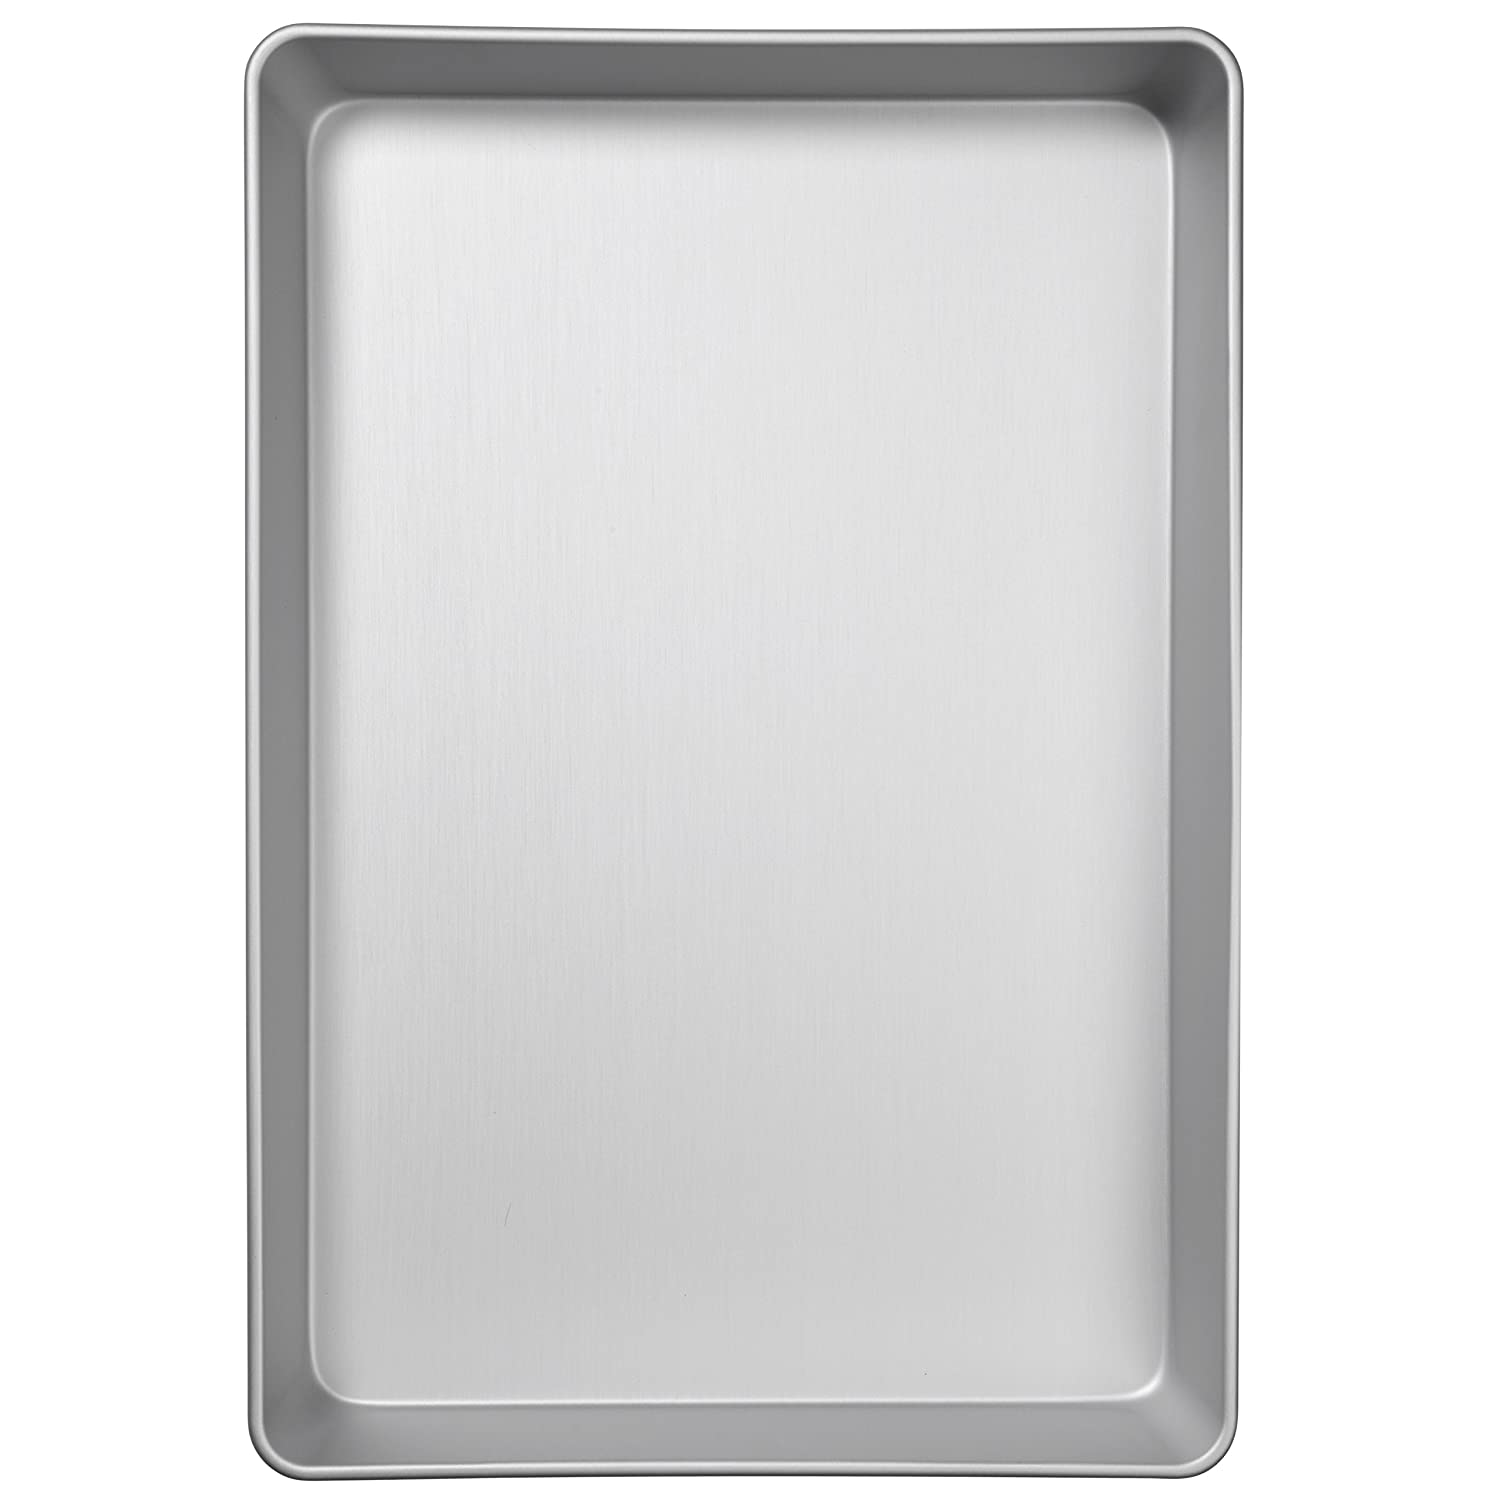 Wilton Aluminum Sheet Pan